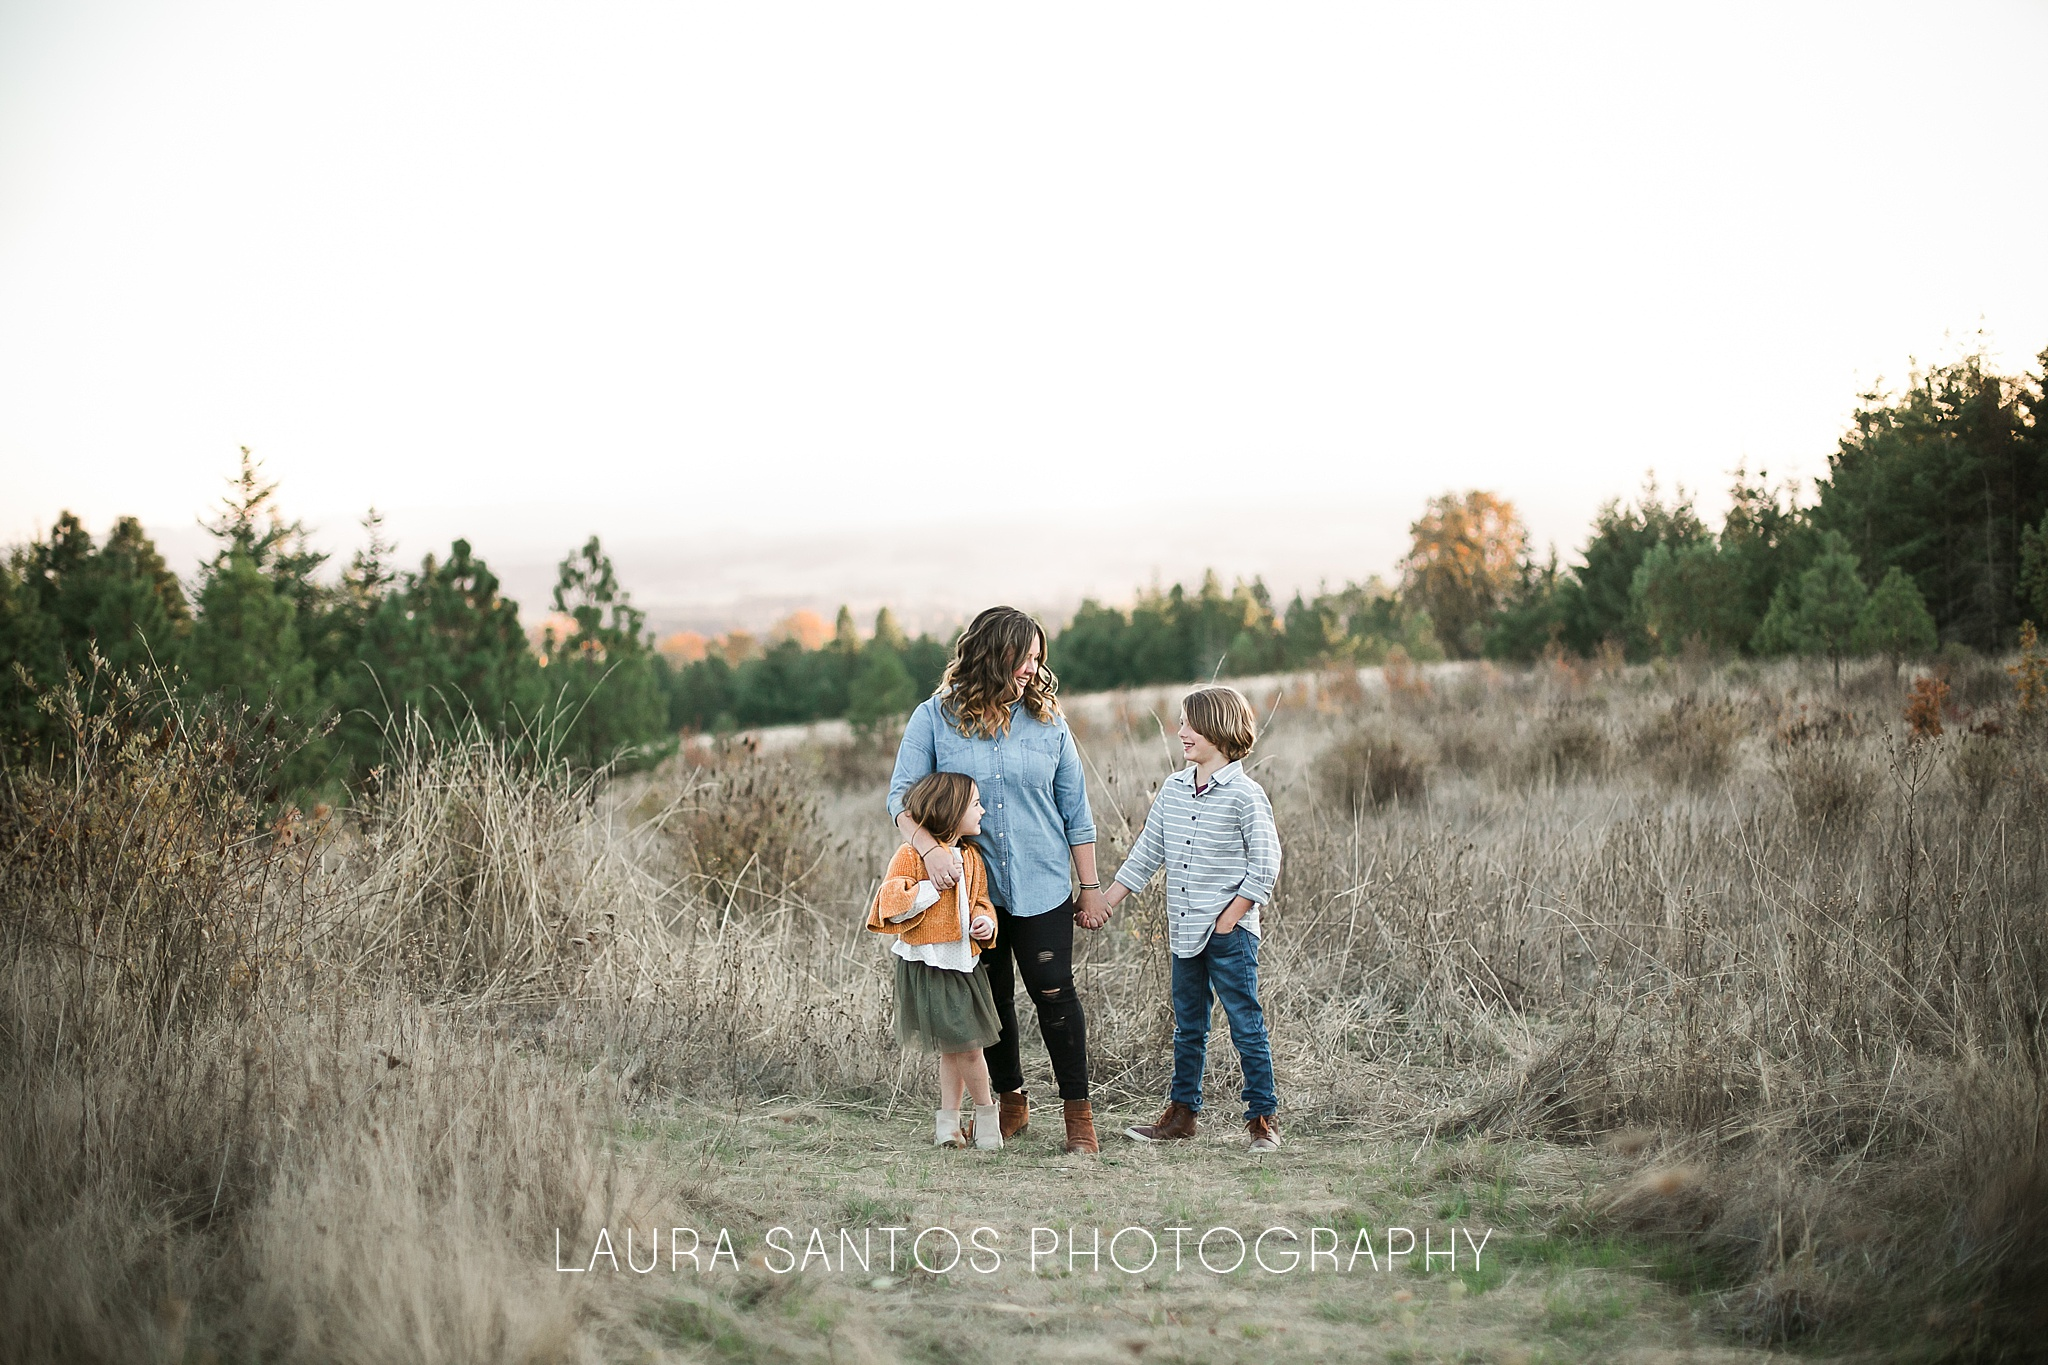 Laura Santos Photography Portland Oregon Family Photographer_0902.jpg